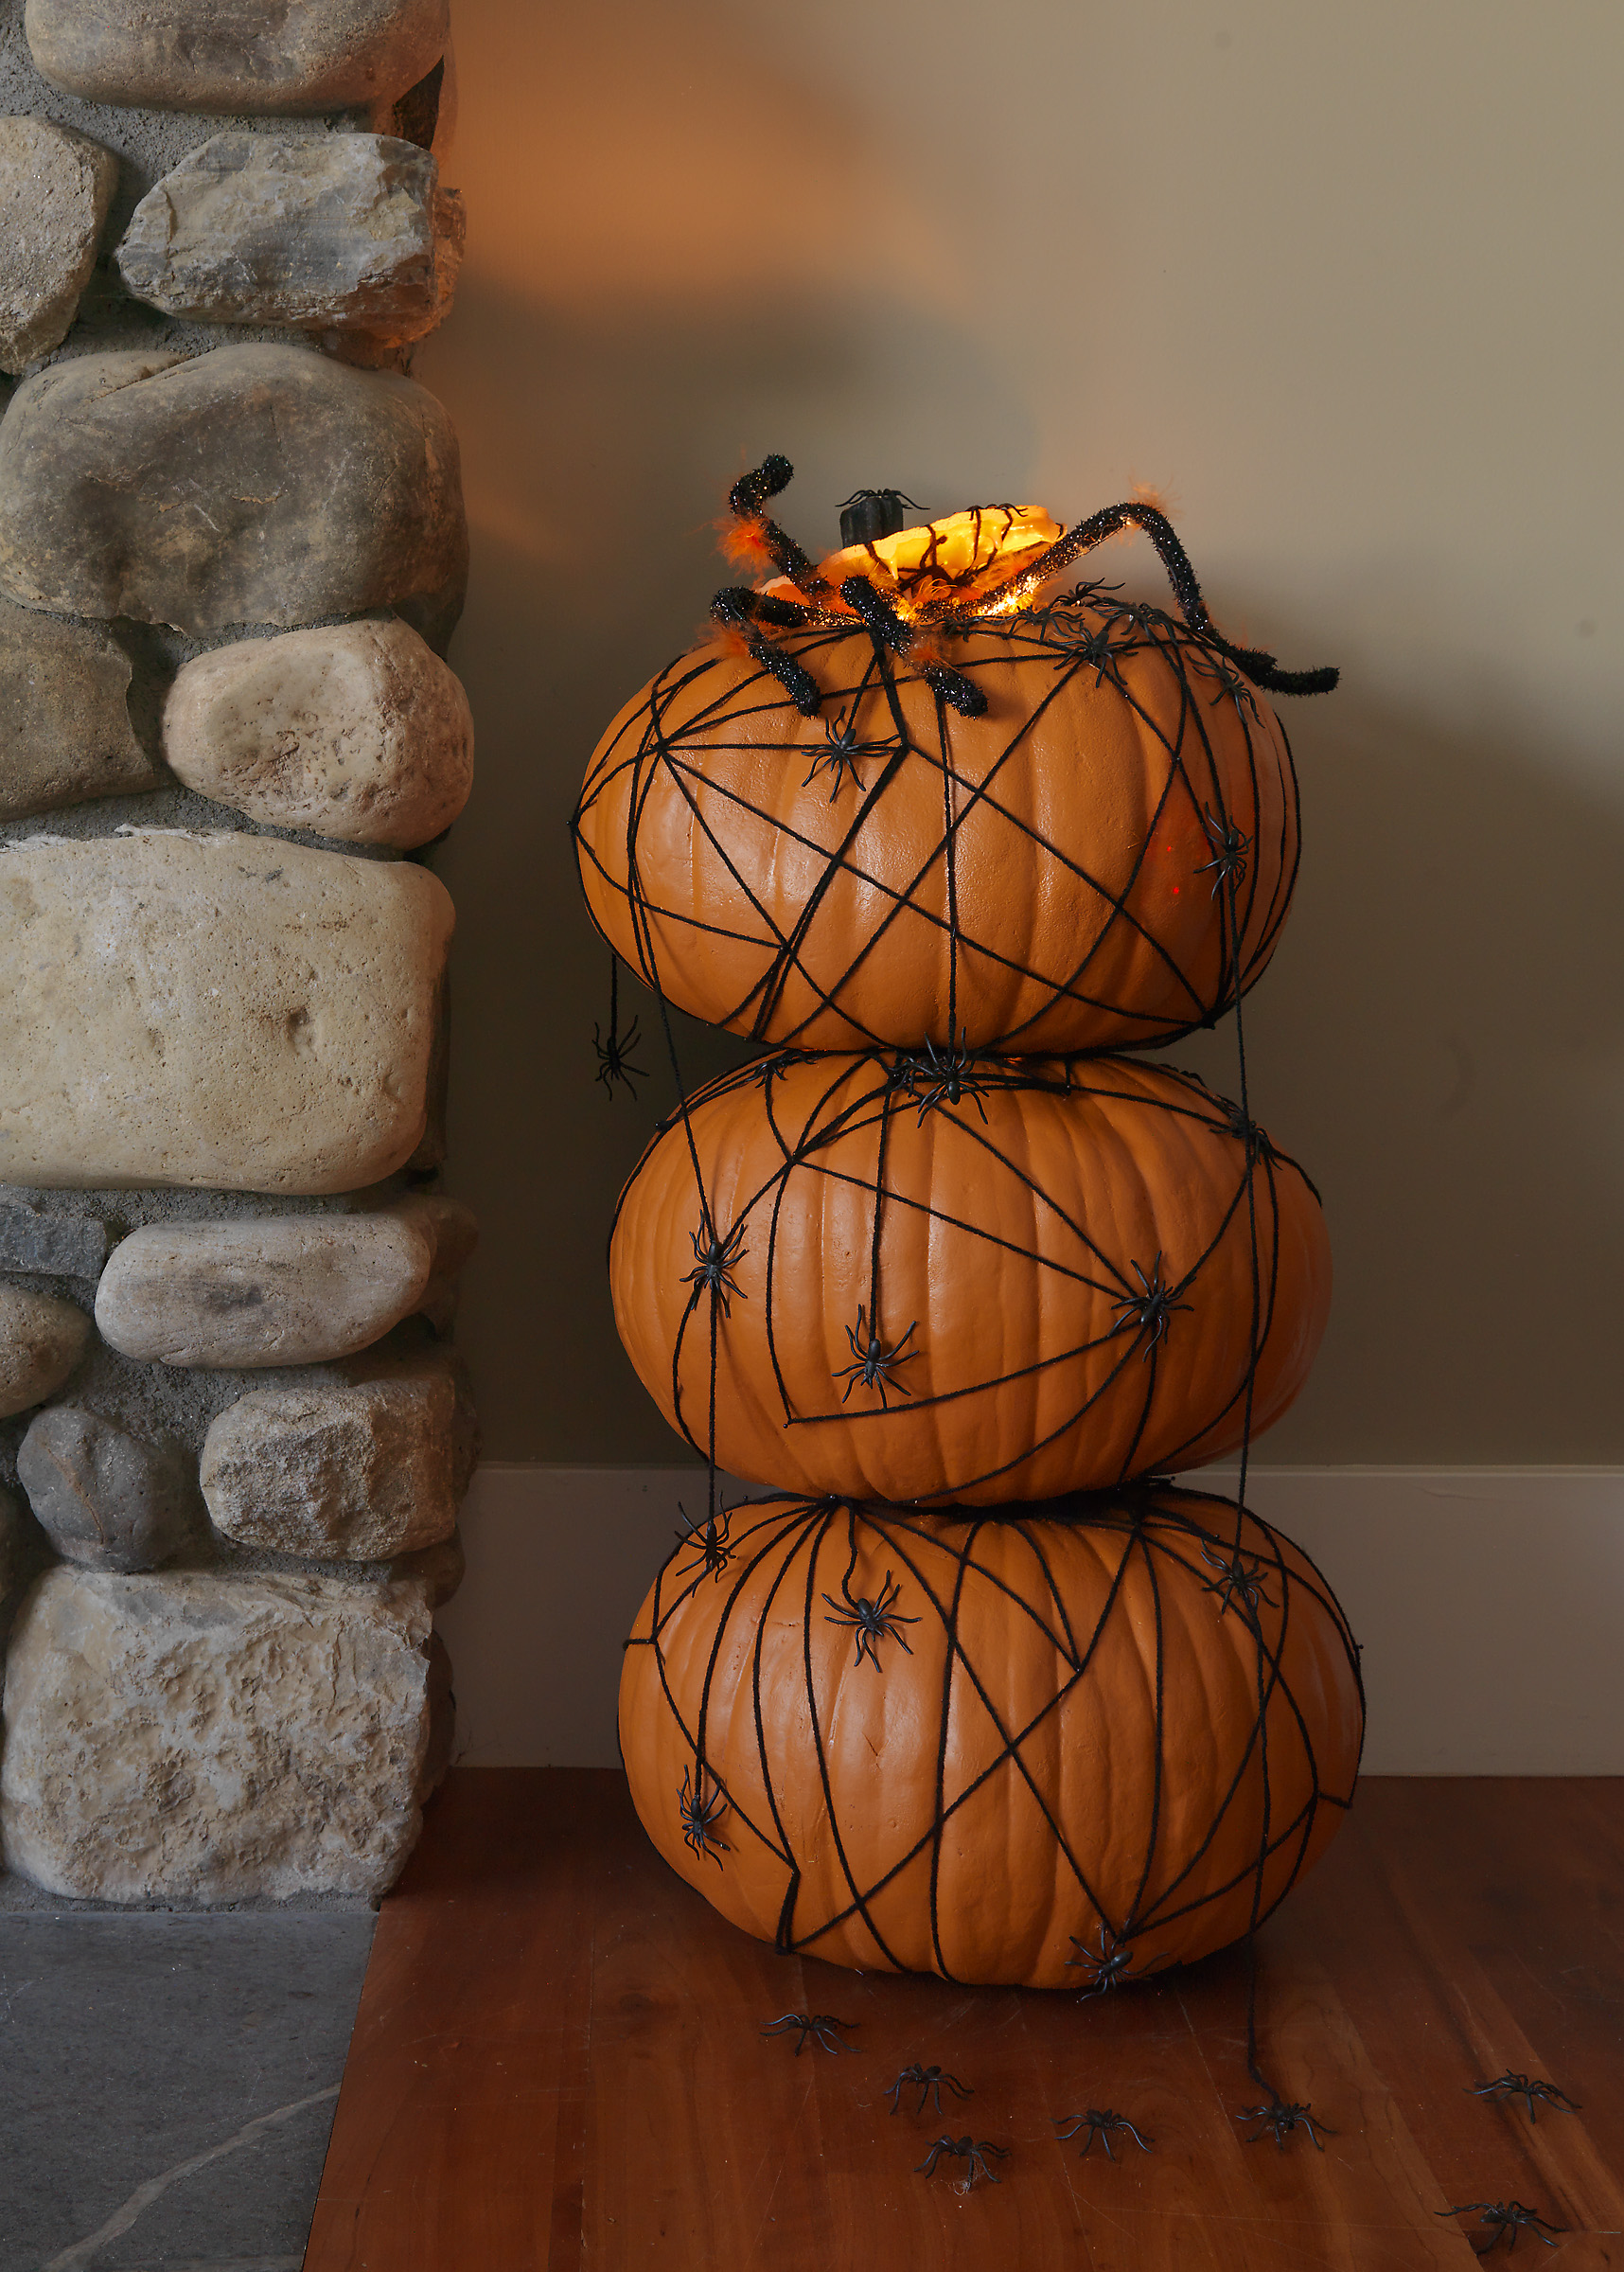 Seriously creepy spider topiary -- so fun to make! See all the topiaries I made for DIY NEWORK here.http://www.diynetwork.com/how-to/make-and-decorate/decorating/halloween-pumpkin-topiary-with-spiders